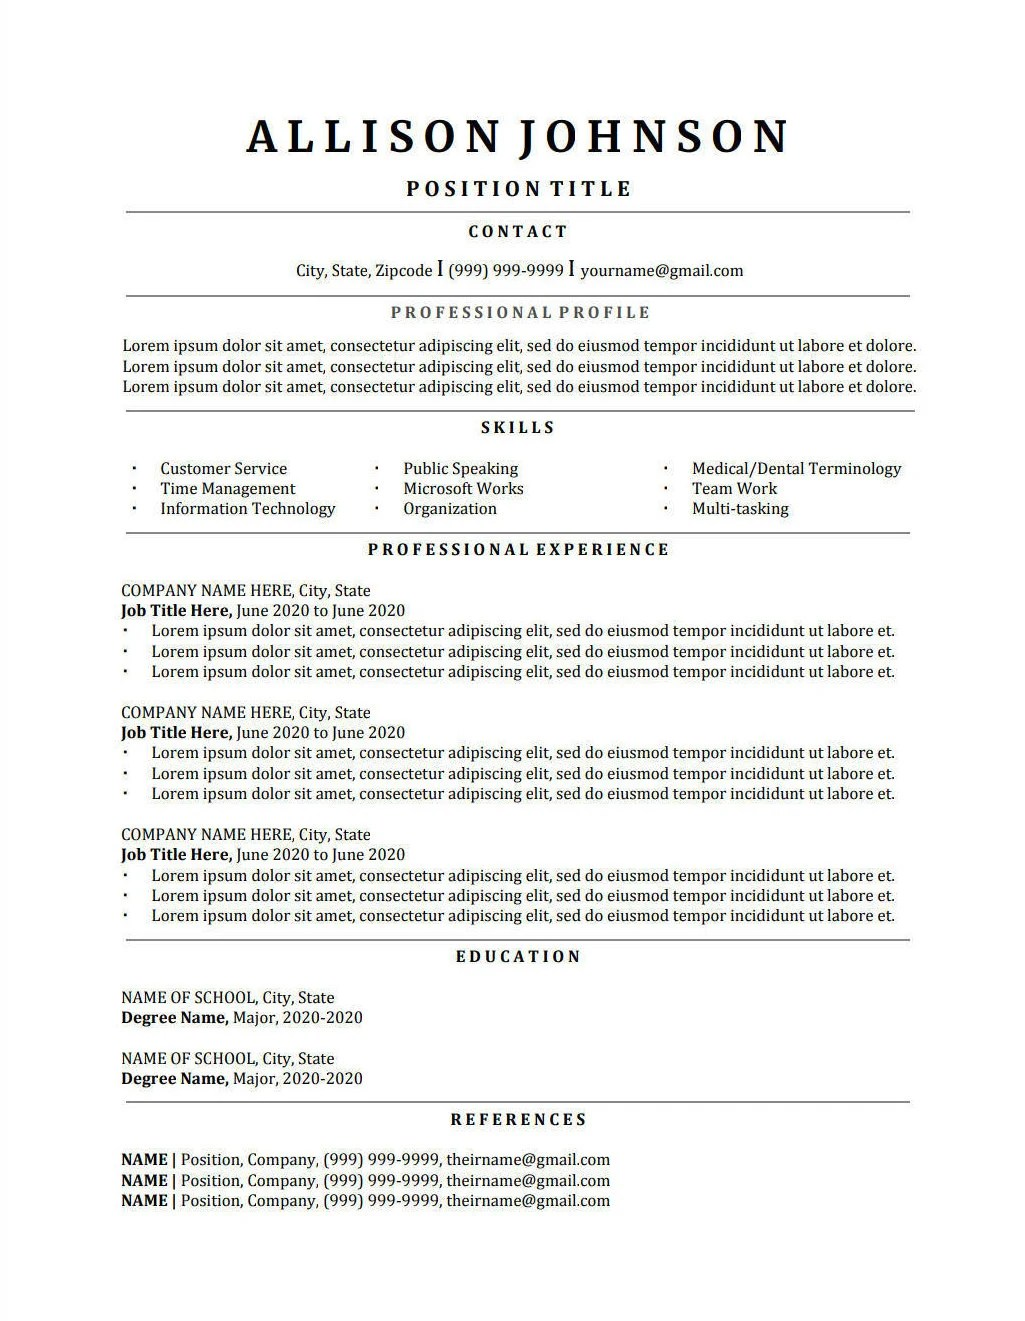 Classic Resume Template CV Template Professional Resume Etsy